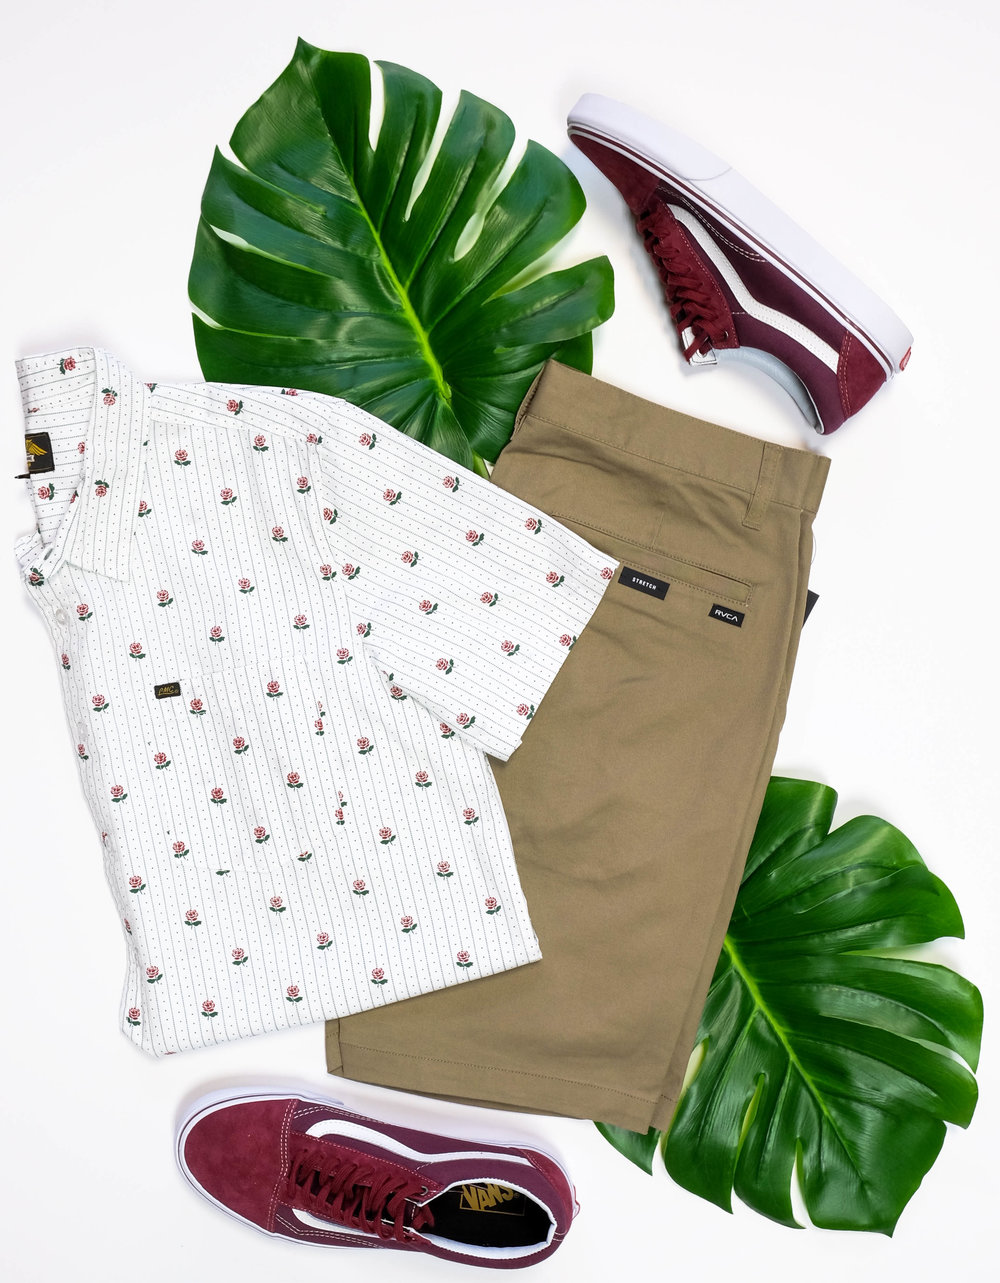 Pictured: Dark Seas Button-Up RVCA Shorts Old Skool Vans Make sure you come visit us and pick up these vacation essential goodies in store! Call if you have any questions or want us to ship! xo Payton   Hours-Mon-Sat: 10-8--Sun: 11-6 Phone 541-617-6113